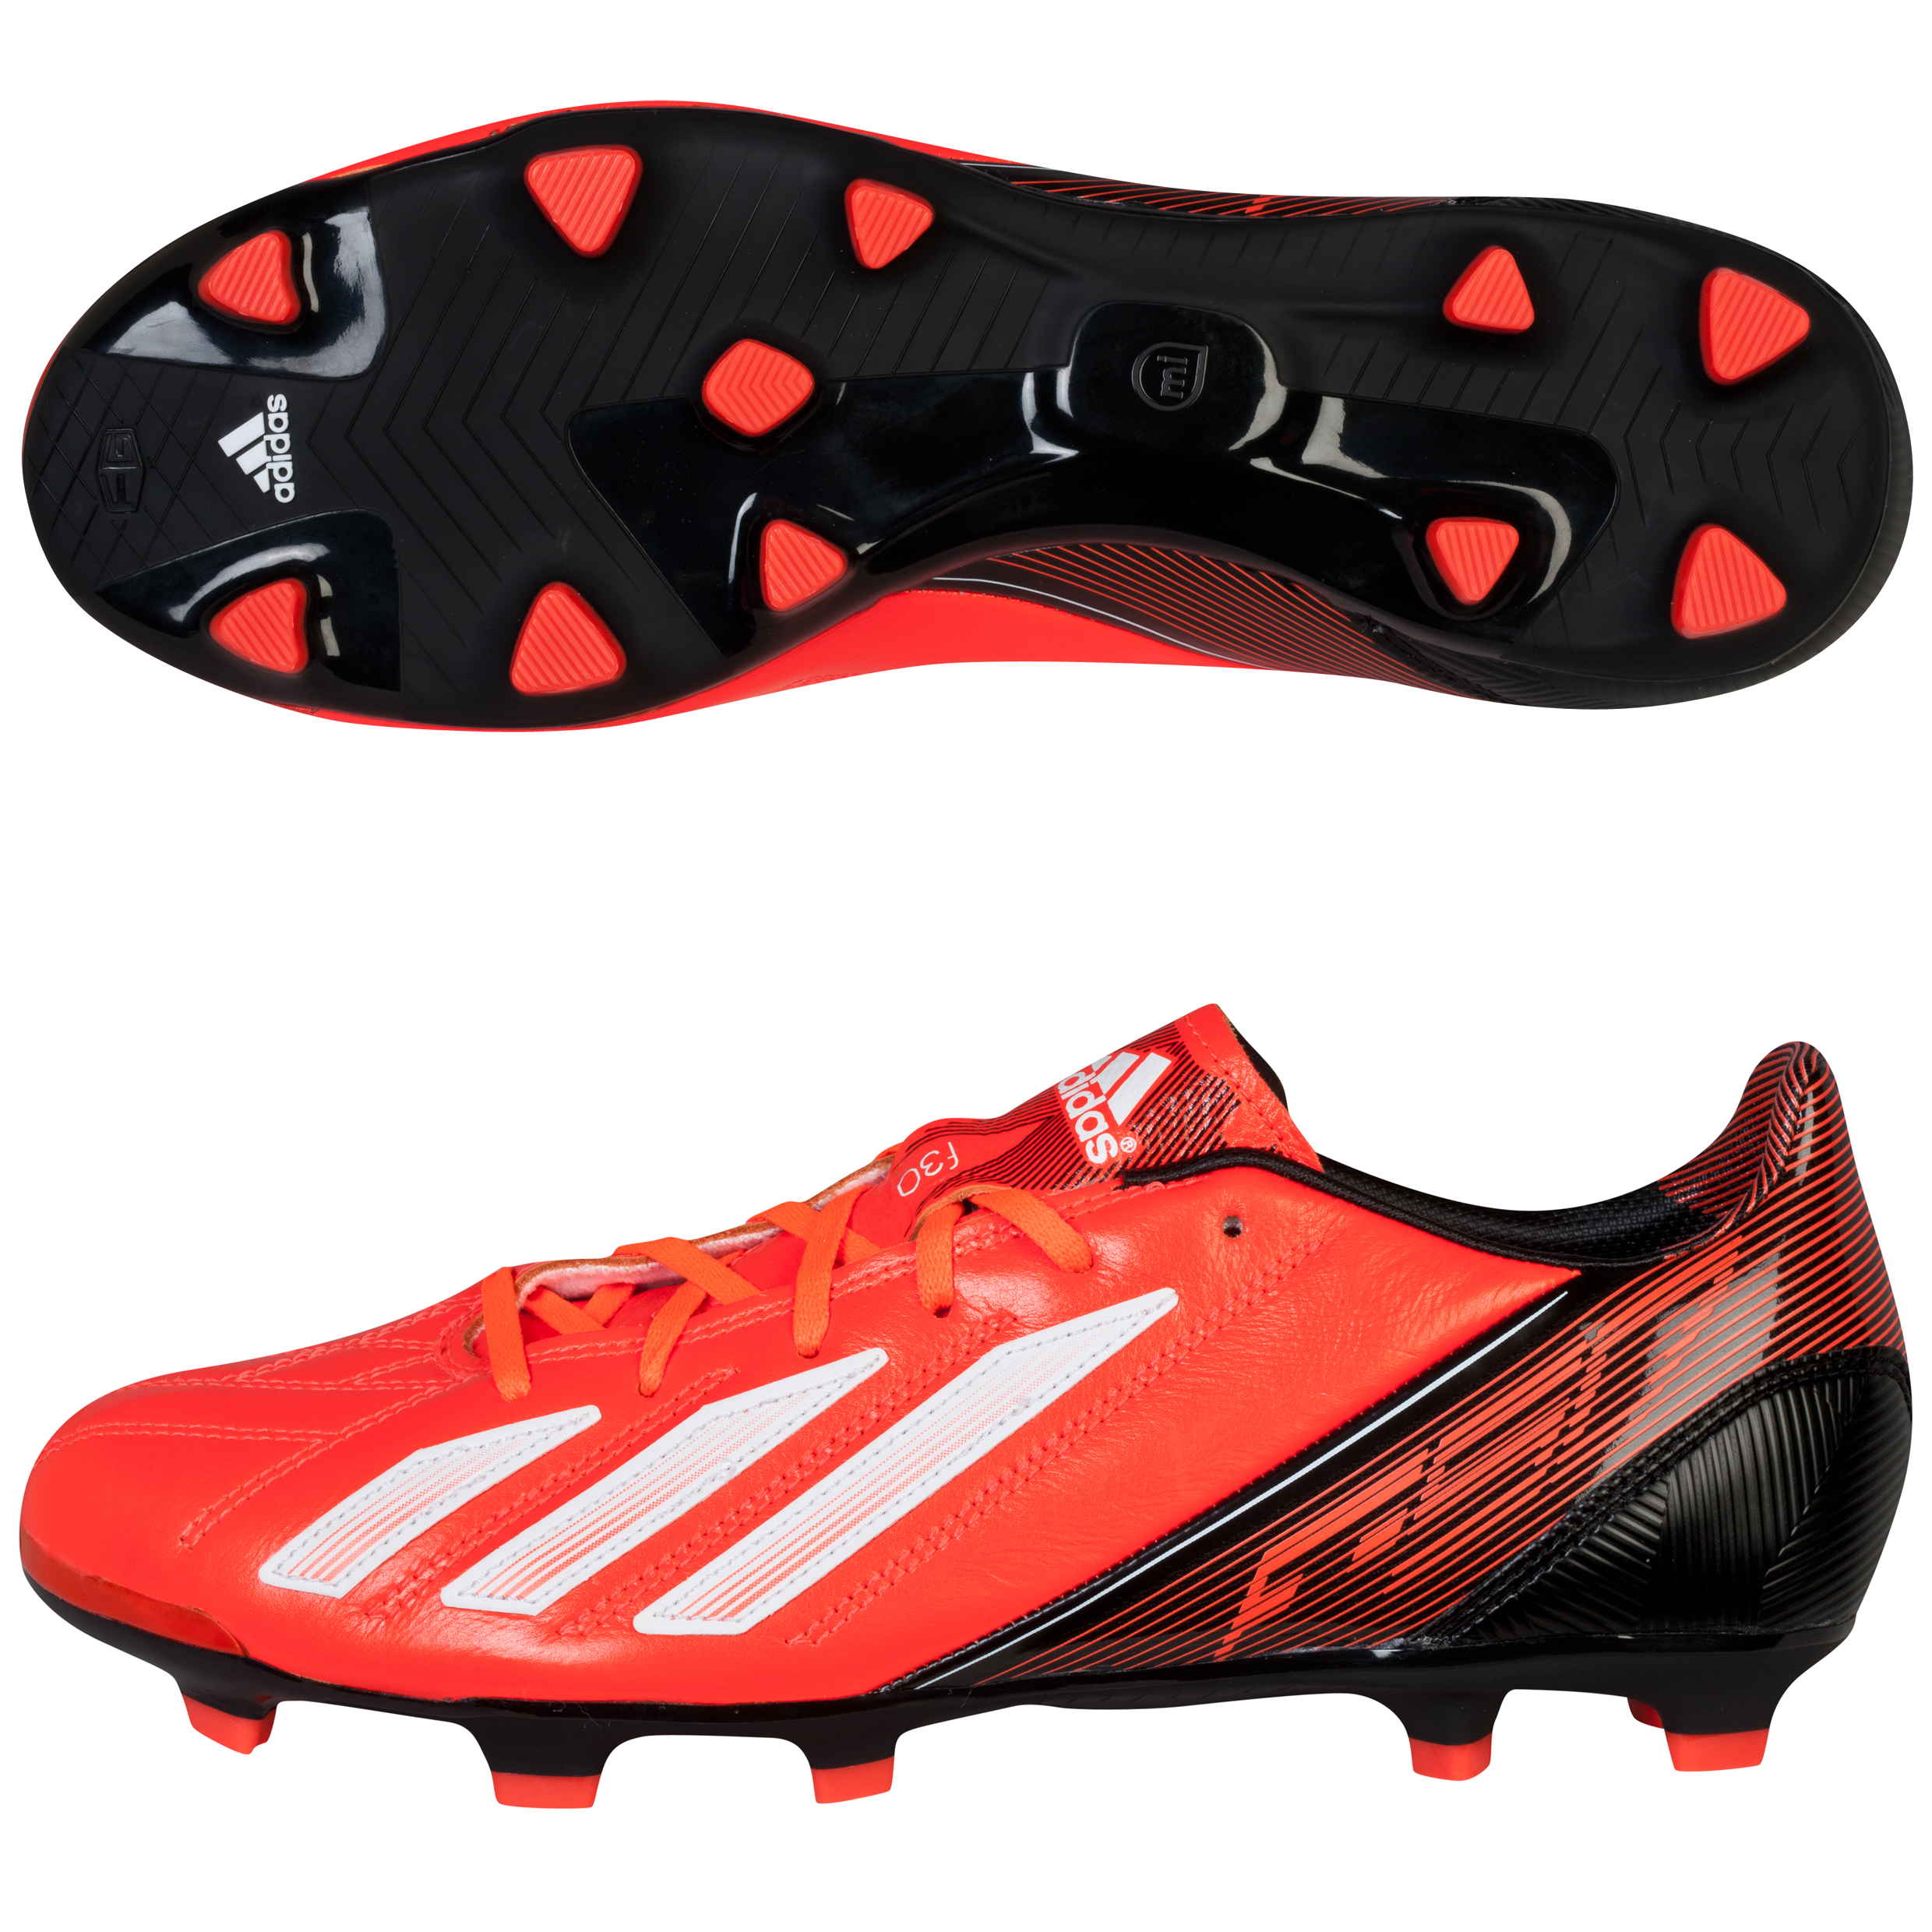 Adidas F30 TRX Leather Firm Ground Football Boots Red